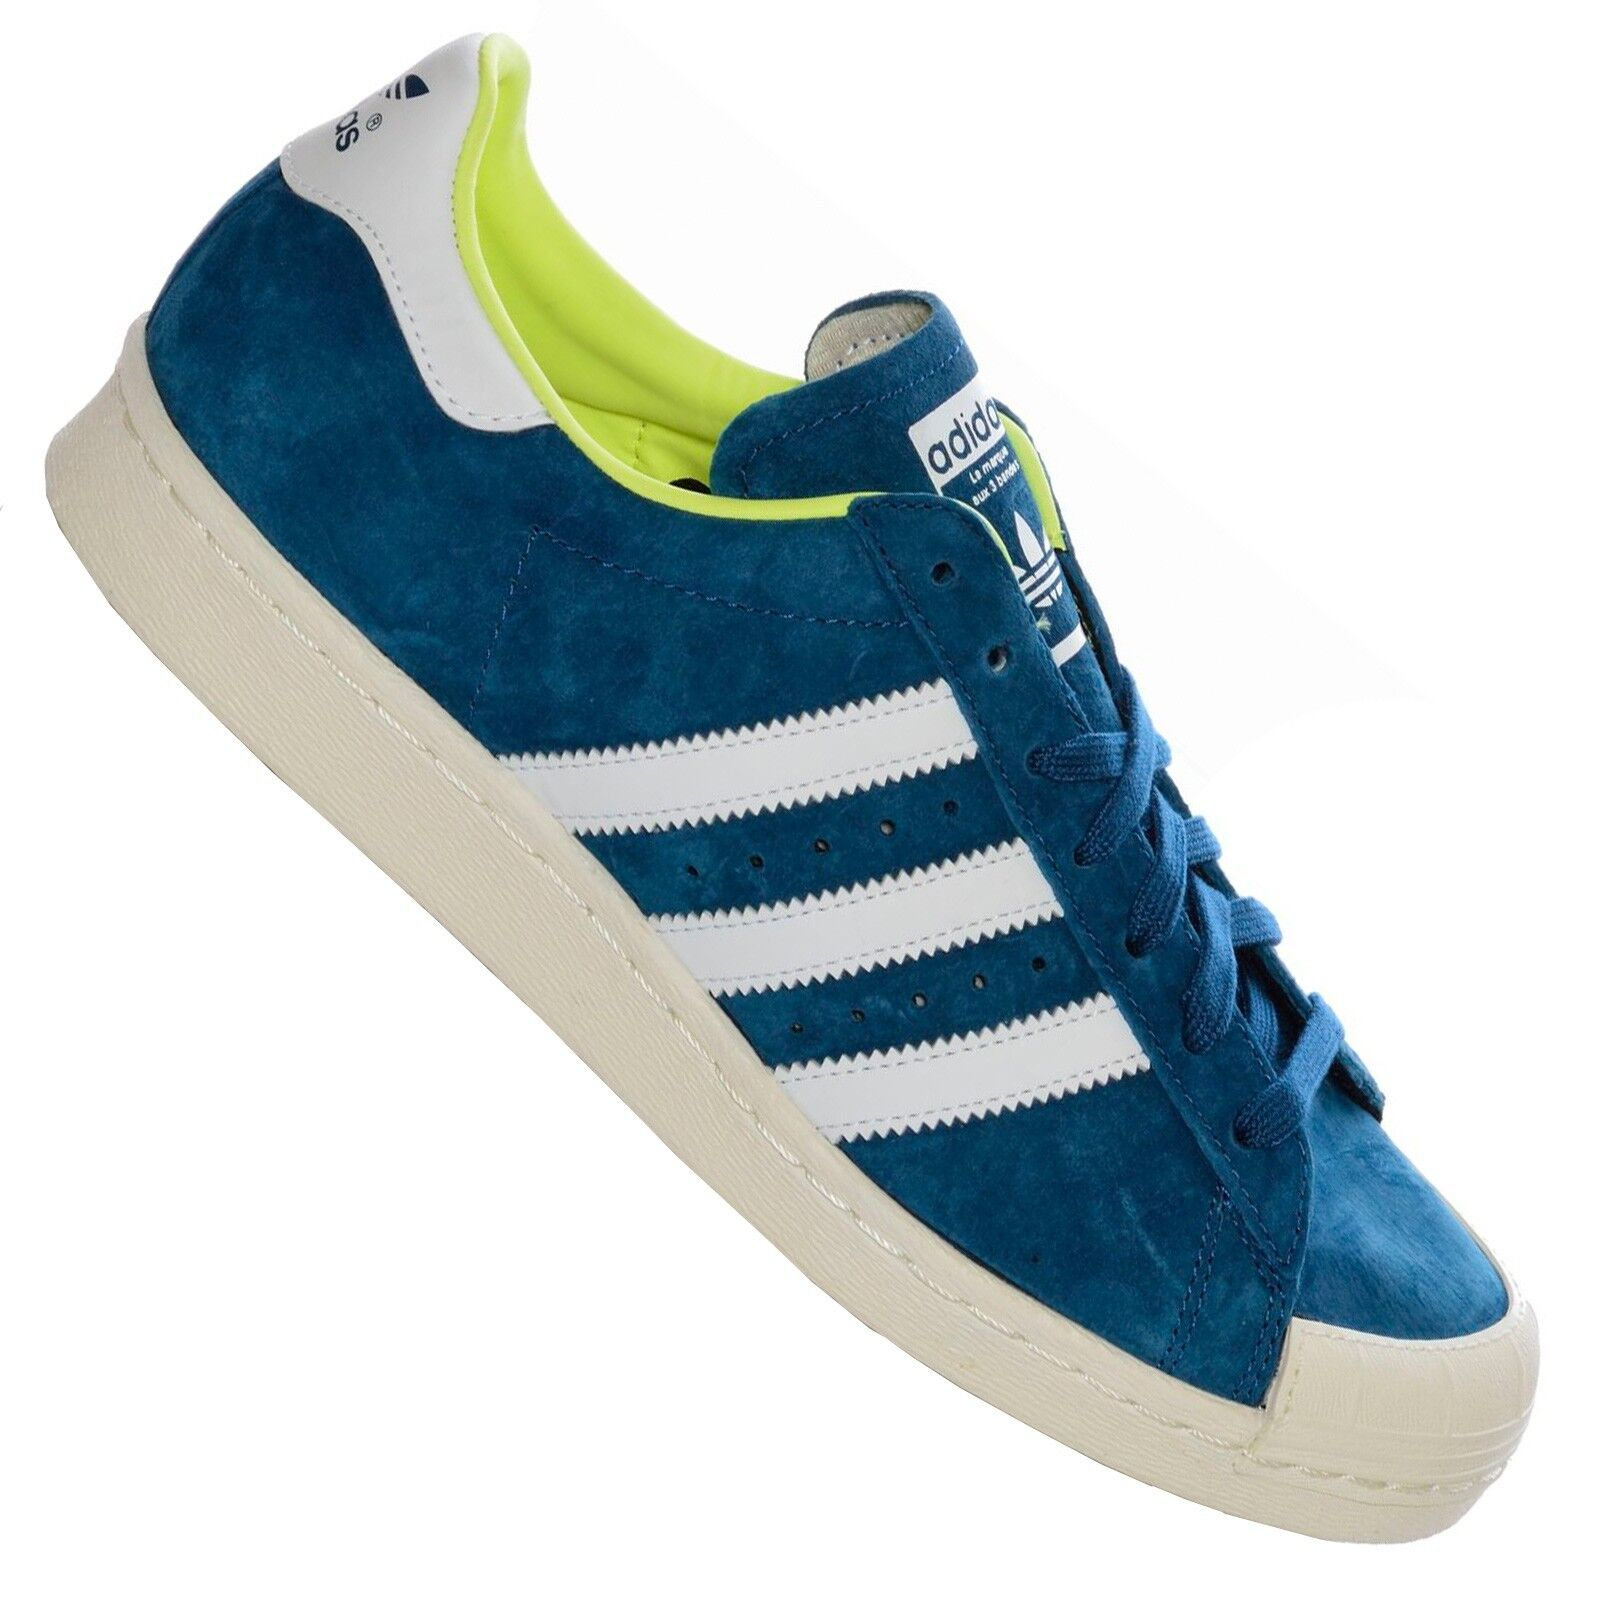 ADIDAS ORIGINALS SUPERSTAR 80s Sneakers Halfshell Trainers Leather Shoes Sneakers 80s Blue de5936